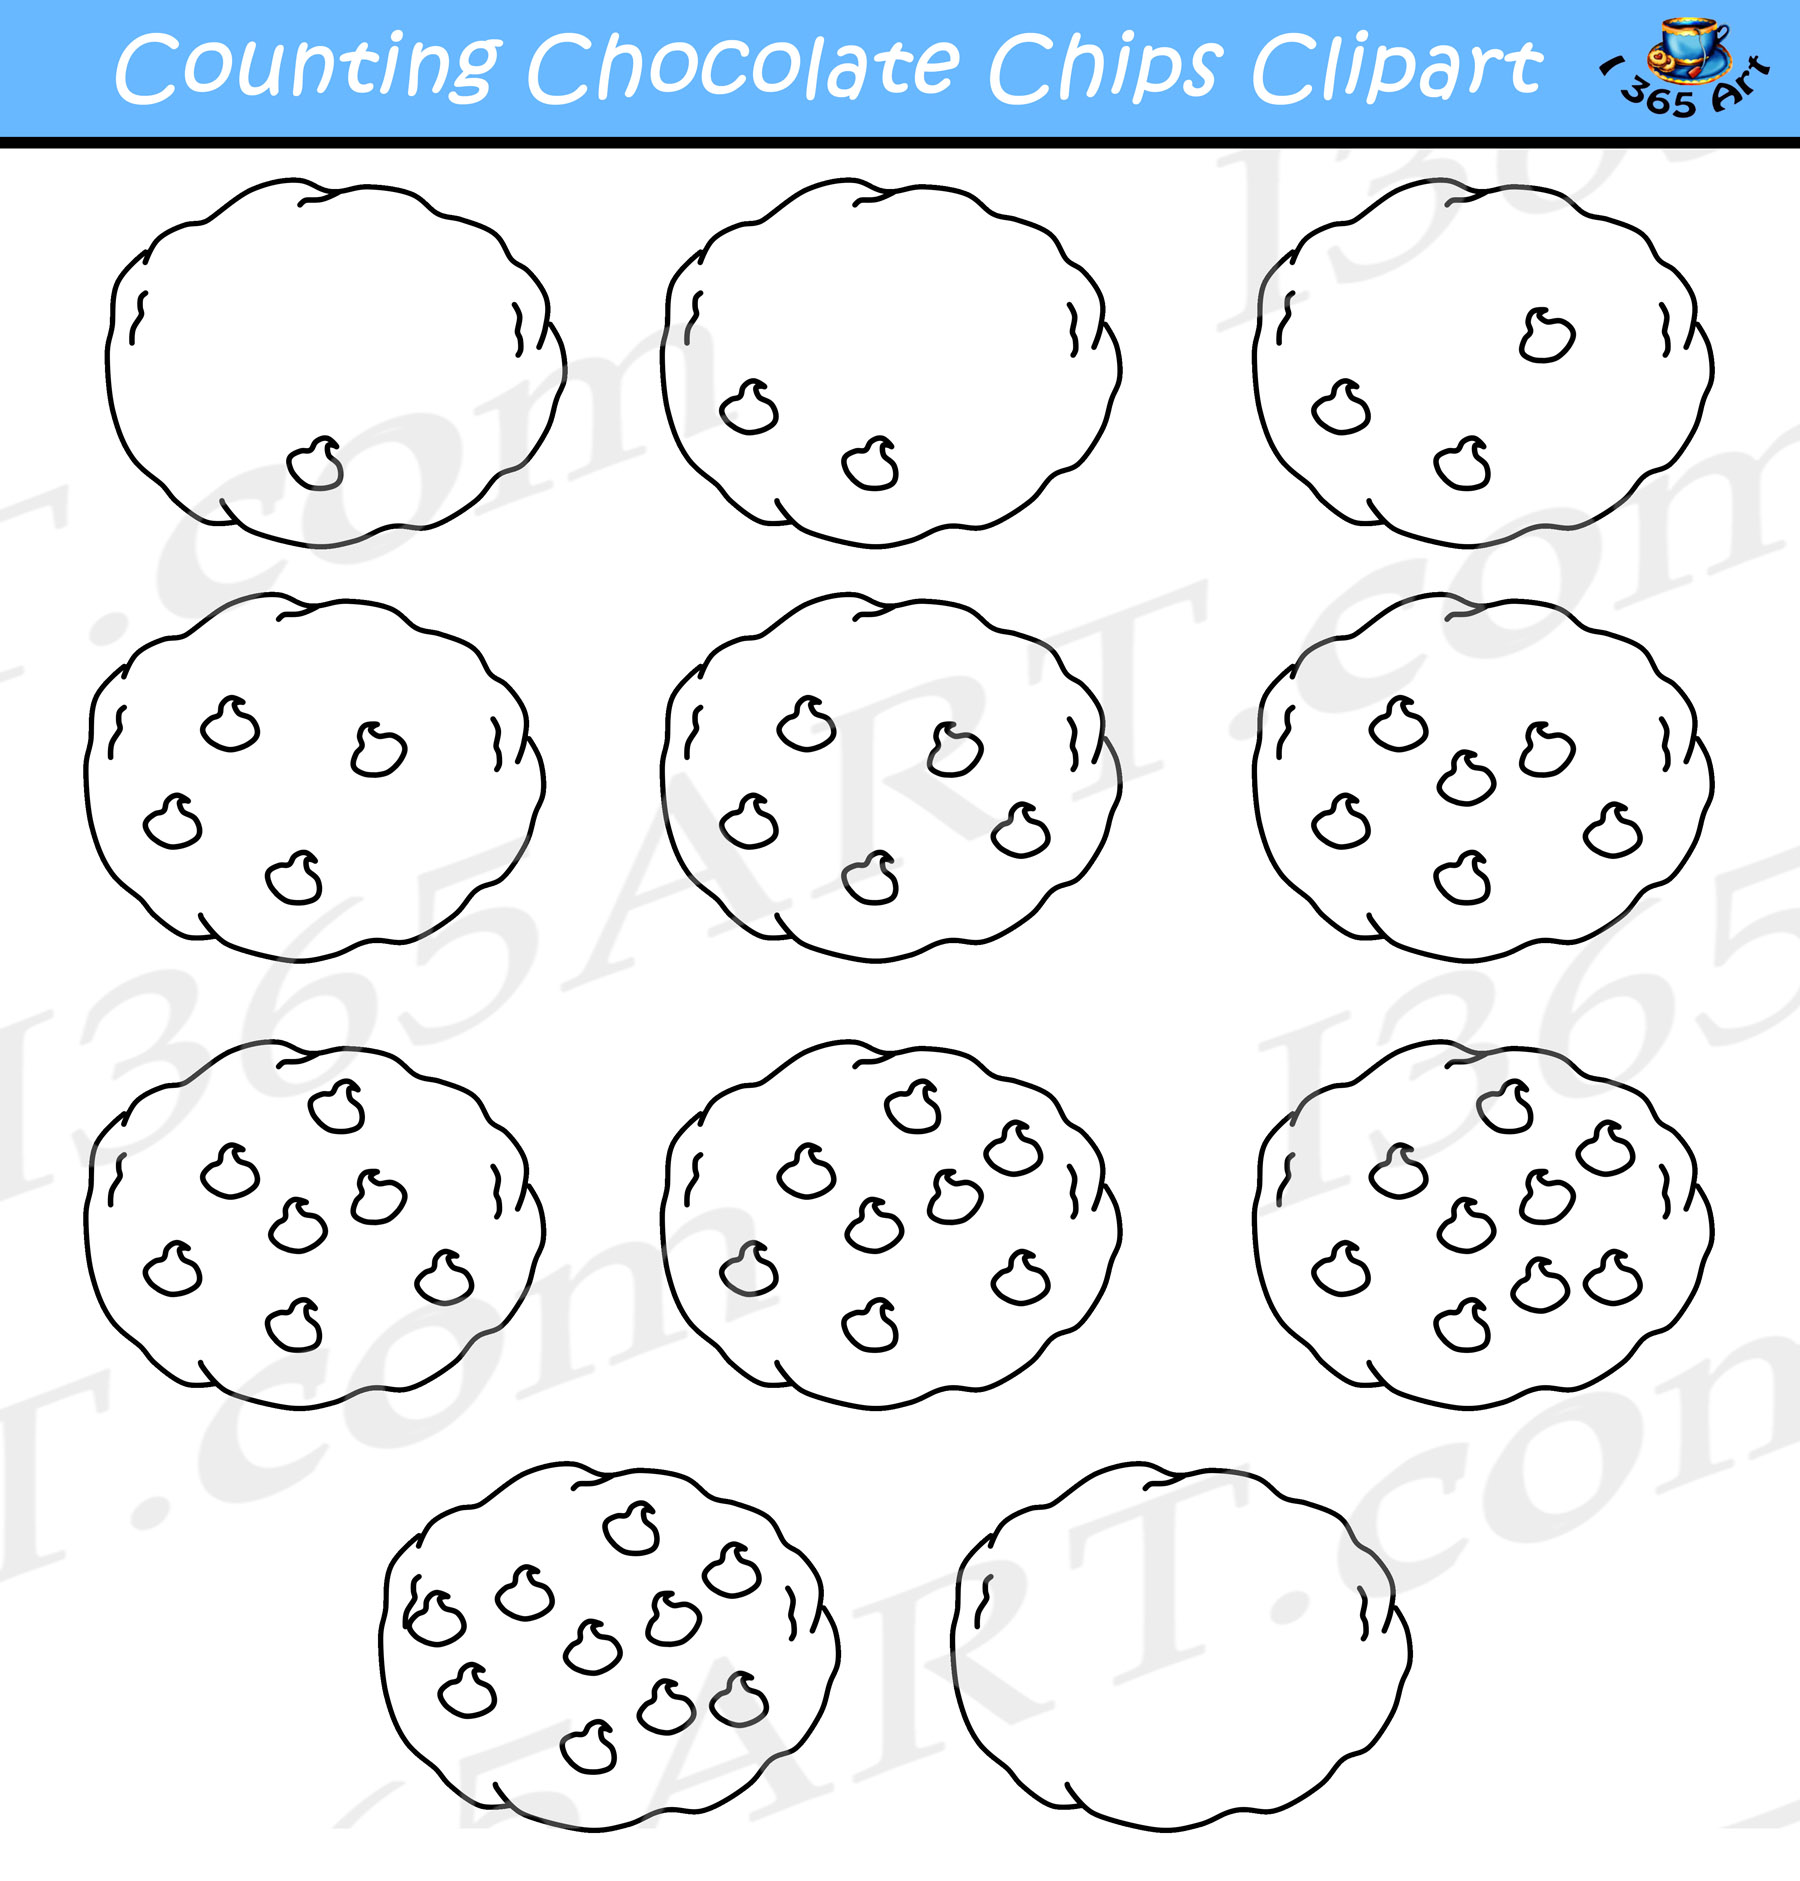 Counting Chocolate Chip Cookies Clipart Commercial Use